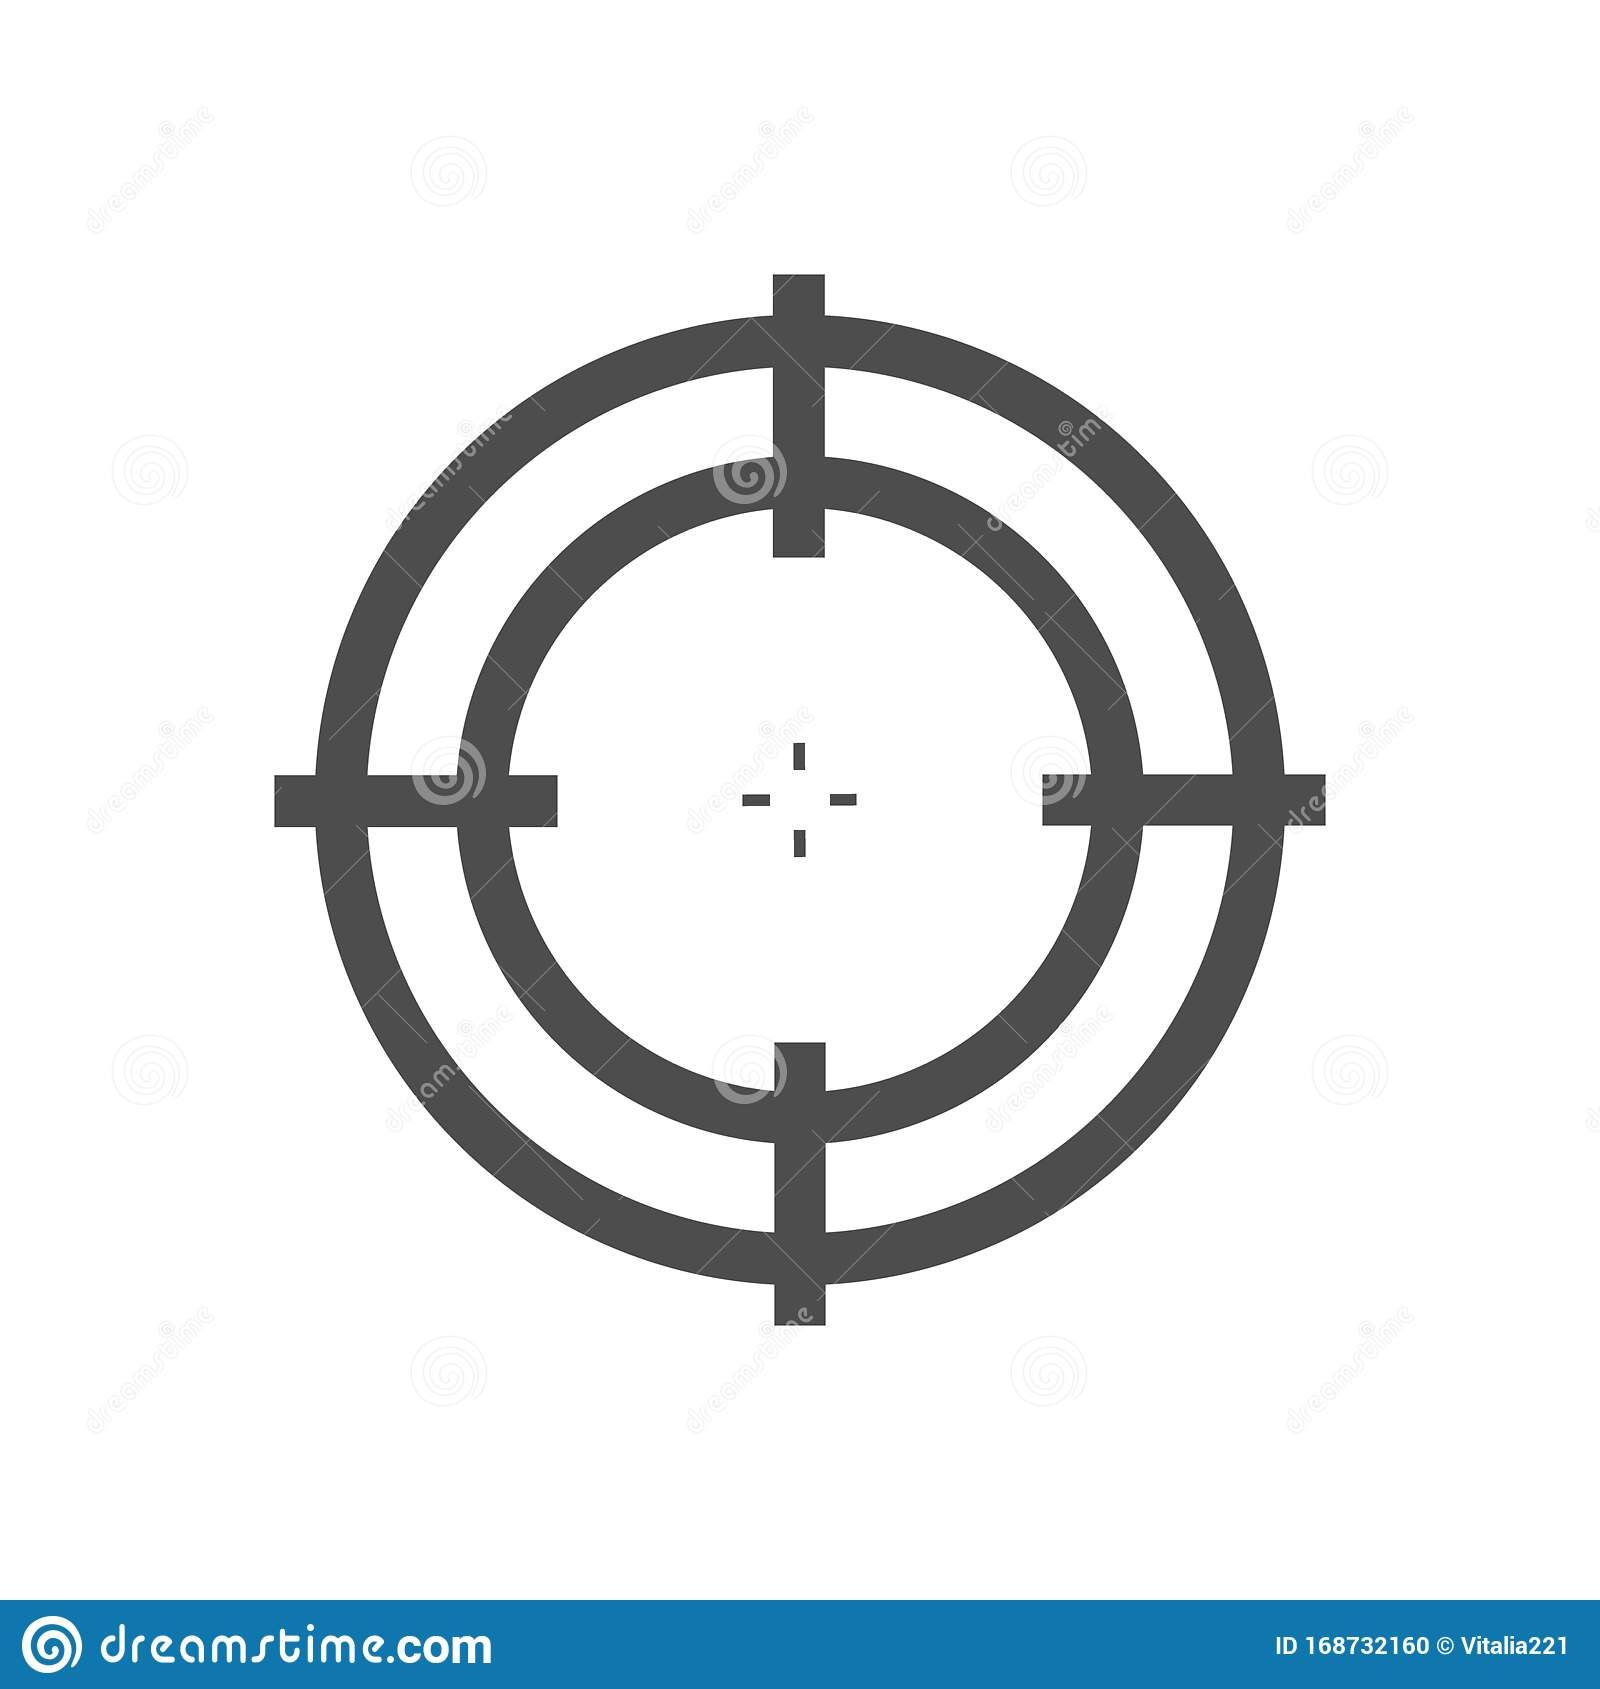 Illustration About Sniper Scope Isolated On The White Background Target Icon Illustration Optical Sight For Differe Icon Illustration White Background Sniper